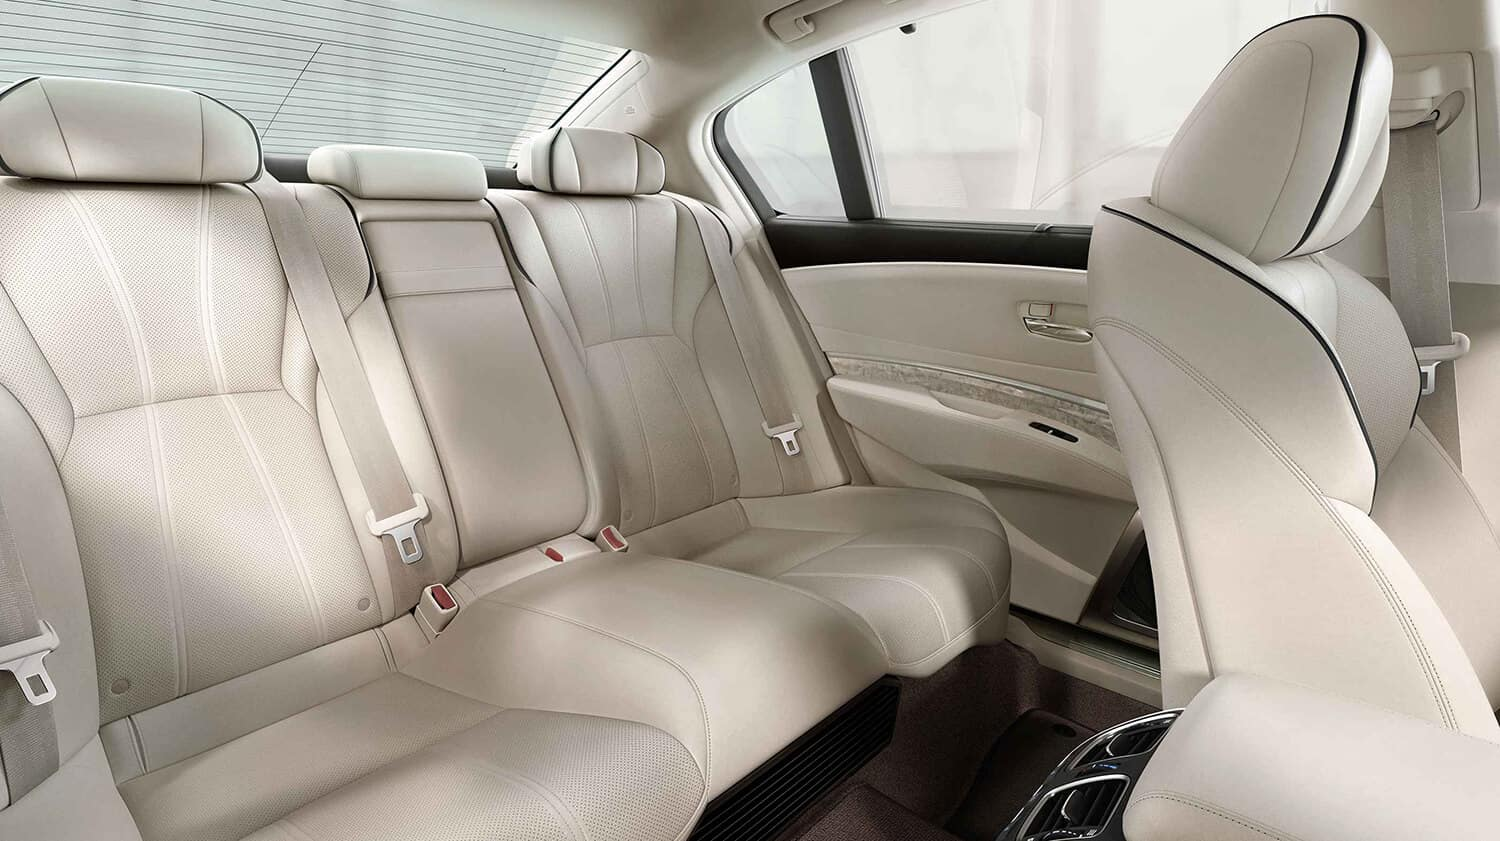 2020 Acura RLX Interior Rear Seating